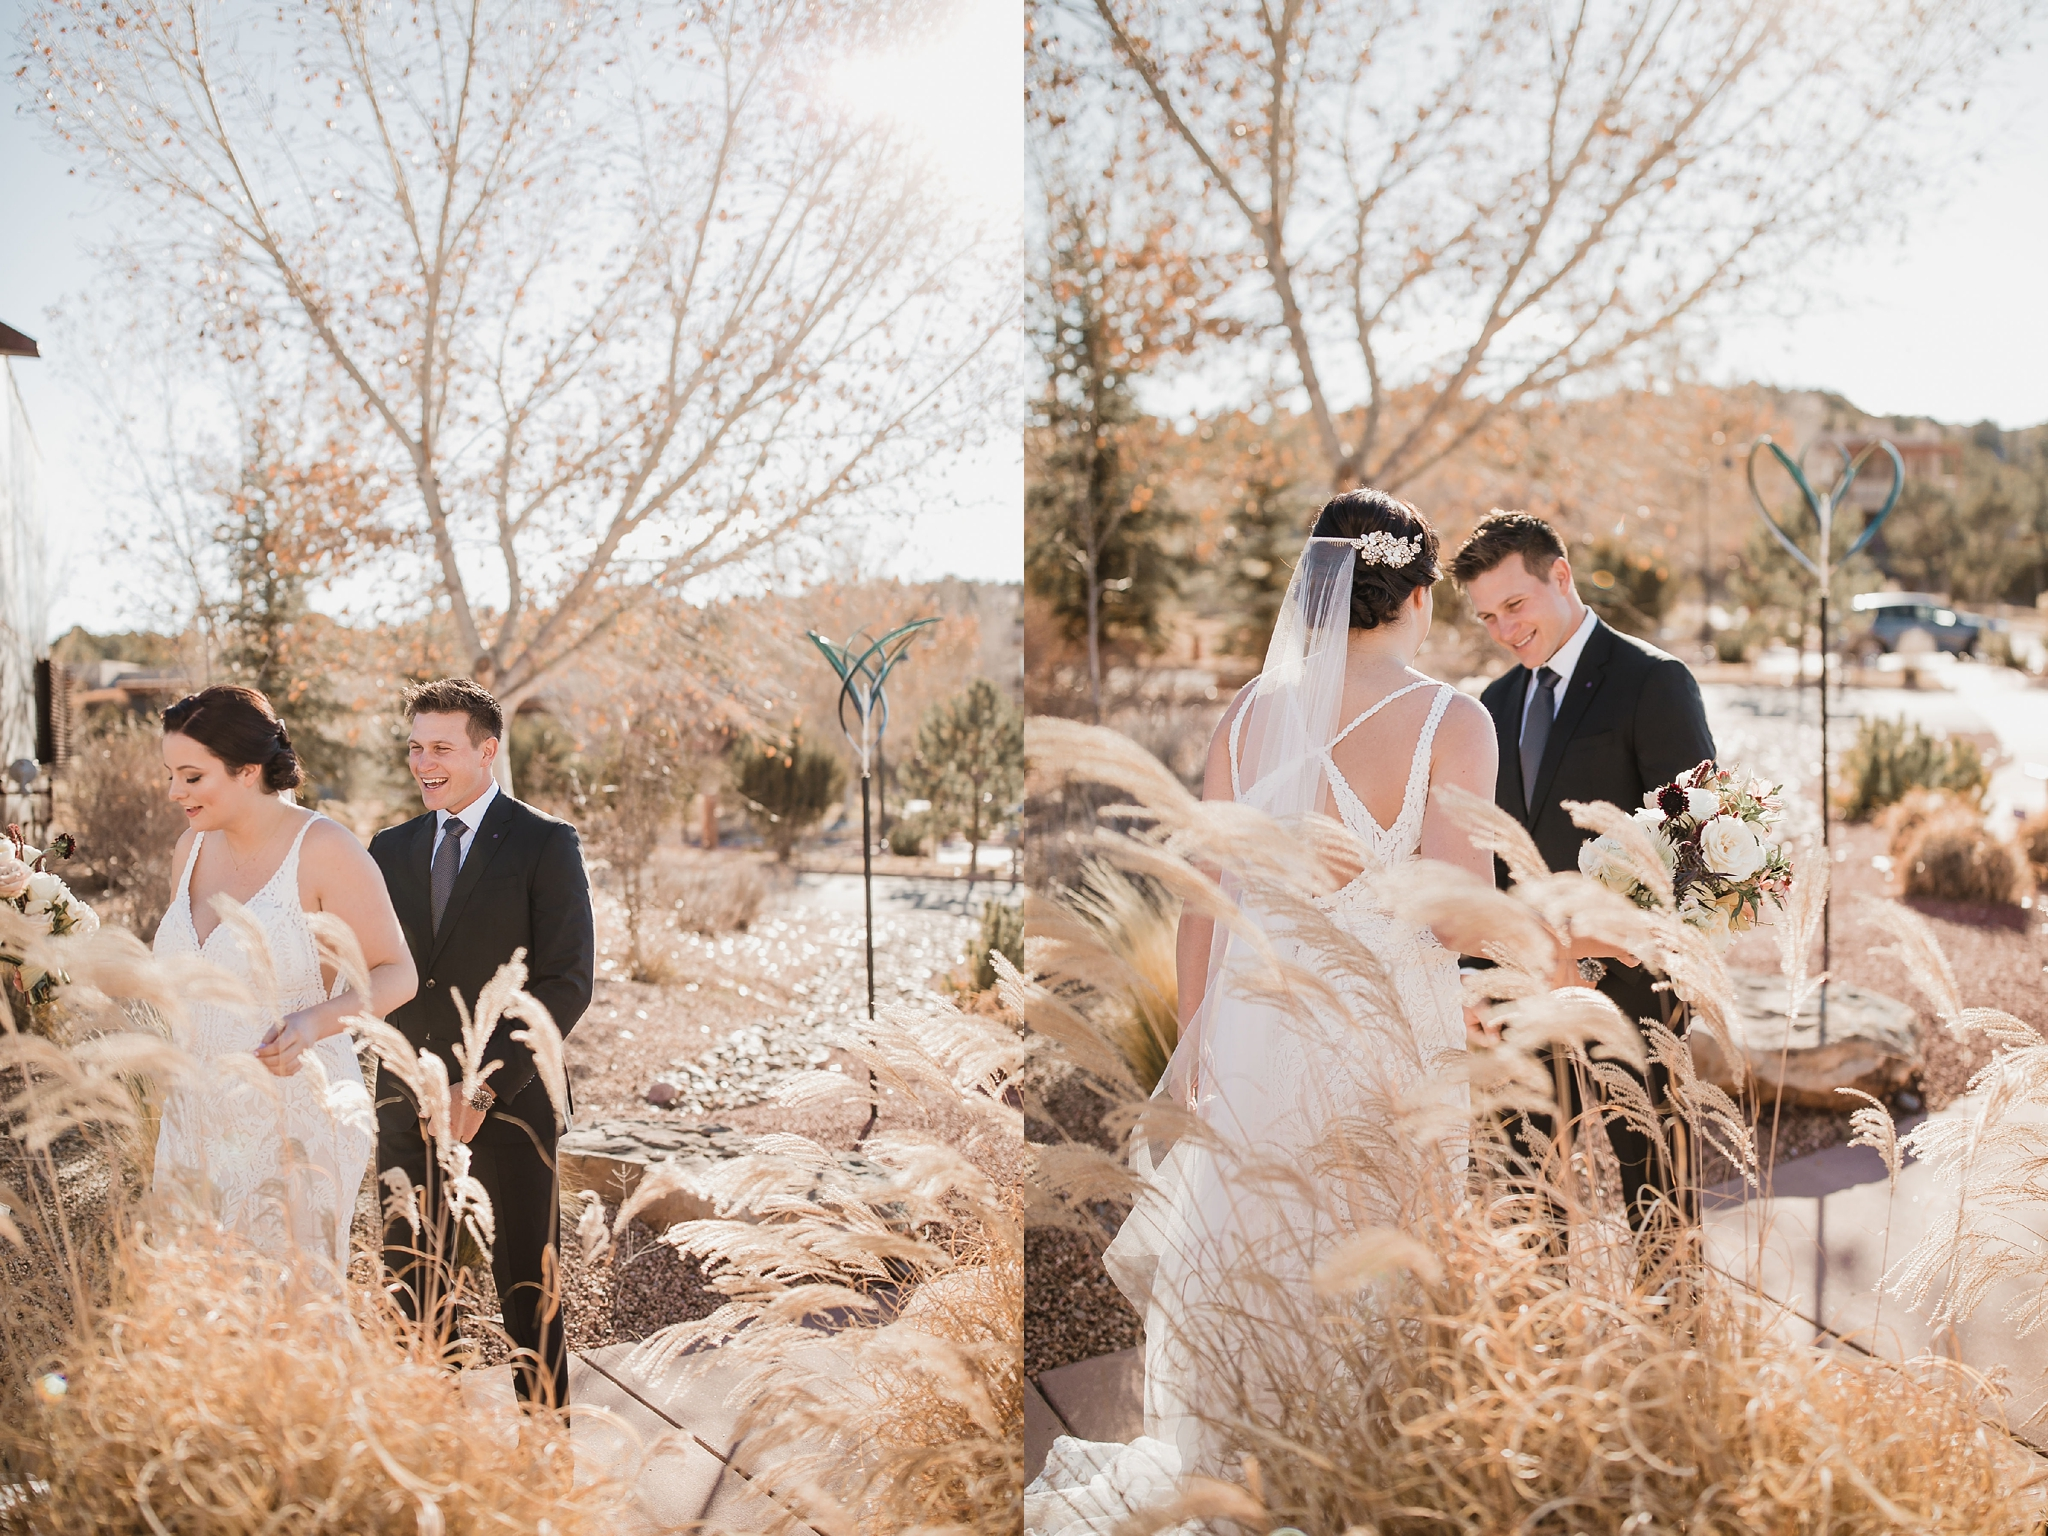 Alicia+lucia+photography+-+albuquerque+wedding+photographer+-+santa+fe+wedding+photography+-+new+mexico+wedding+photographer+-+new+mexico+wedding+-+santa+fe+wedding+-+four+seasons+wedding+-+winter+wedding_0032.jpg